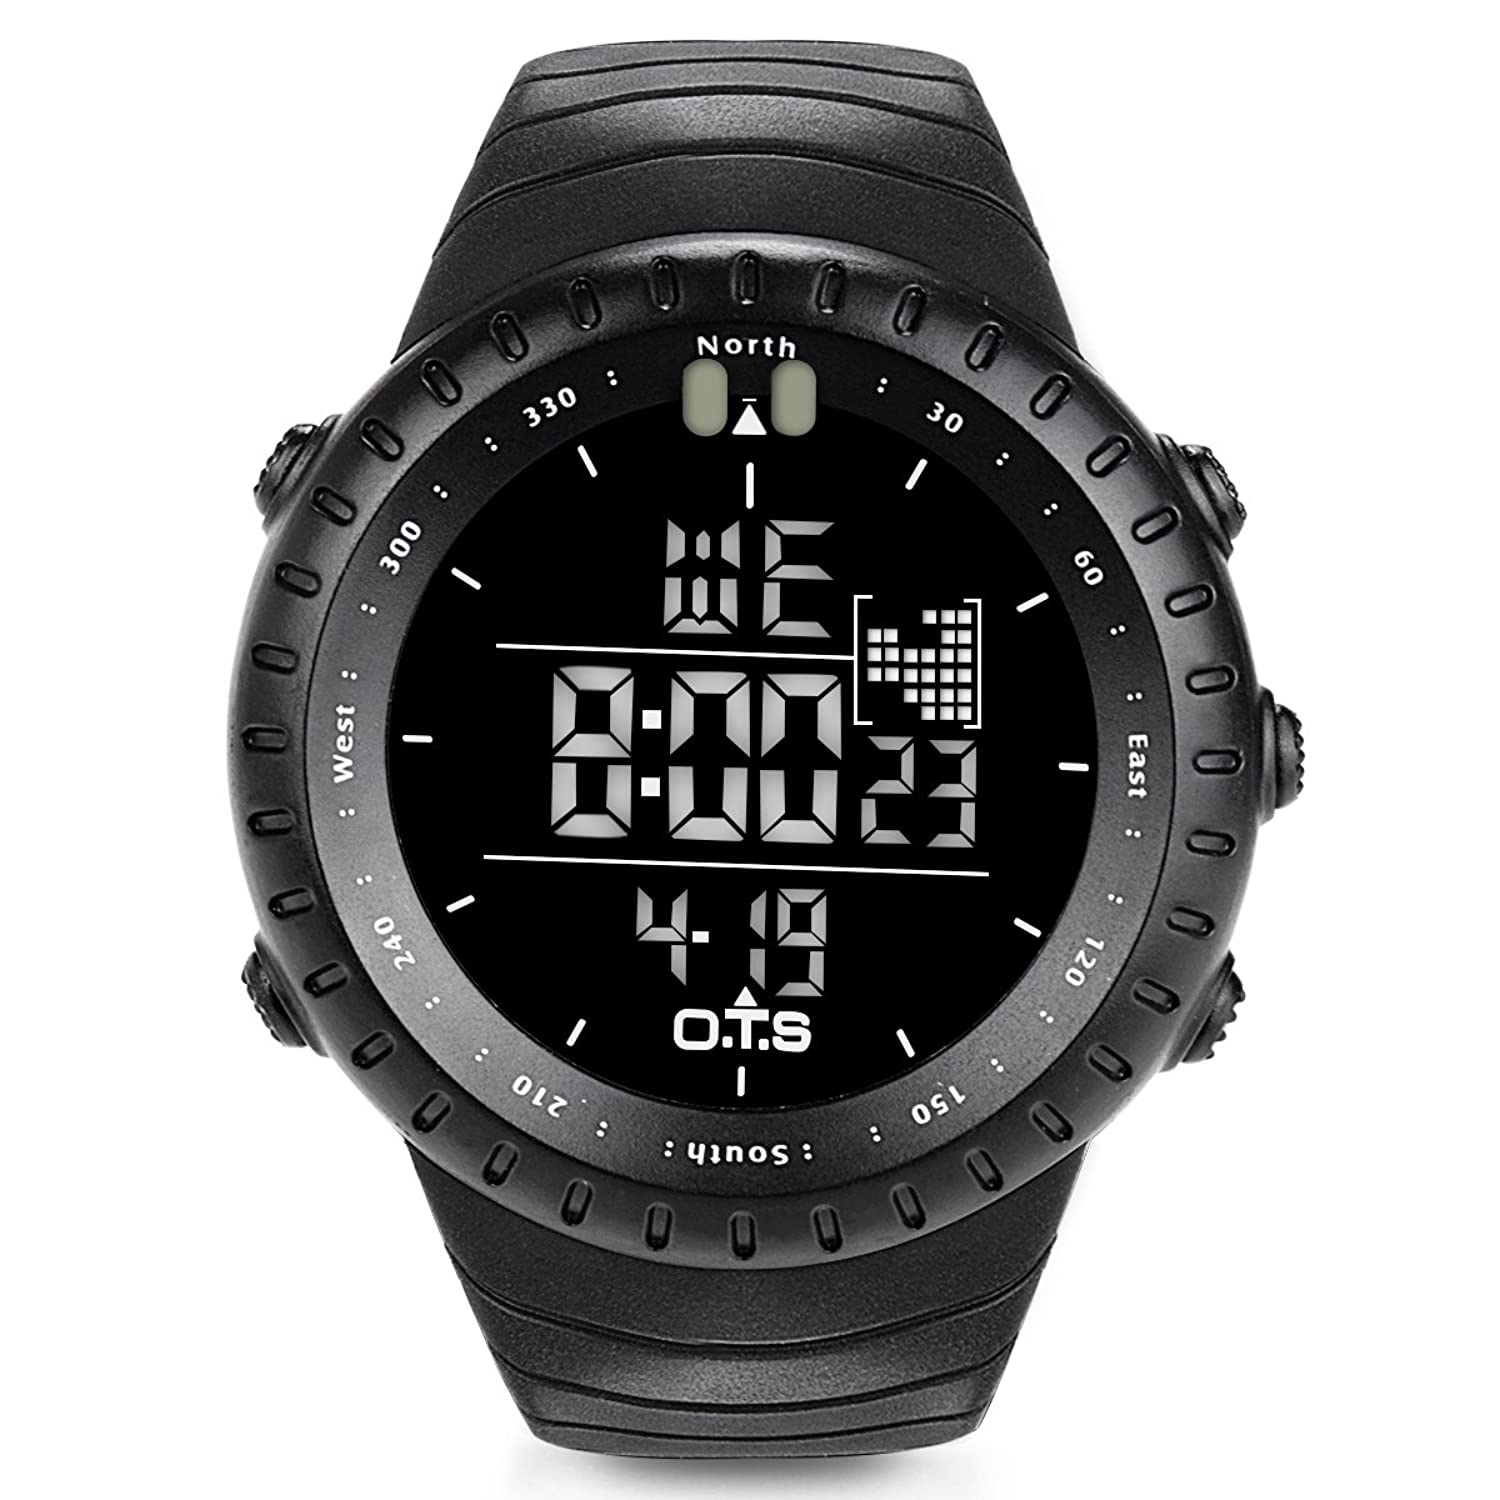 straps luxury brand airboats watch smael men dual casual dive sports watches military xfcs pu mens fashion display led setx products camouflage